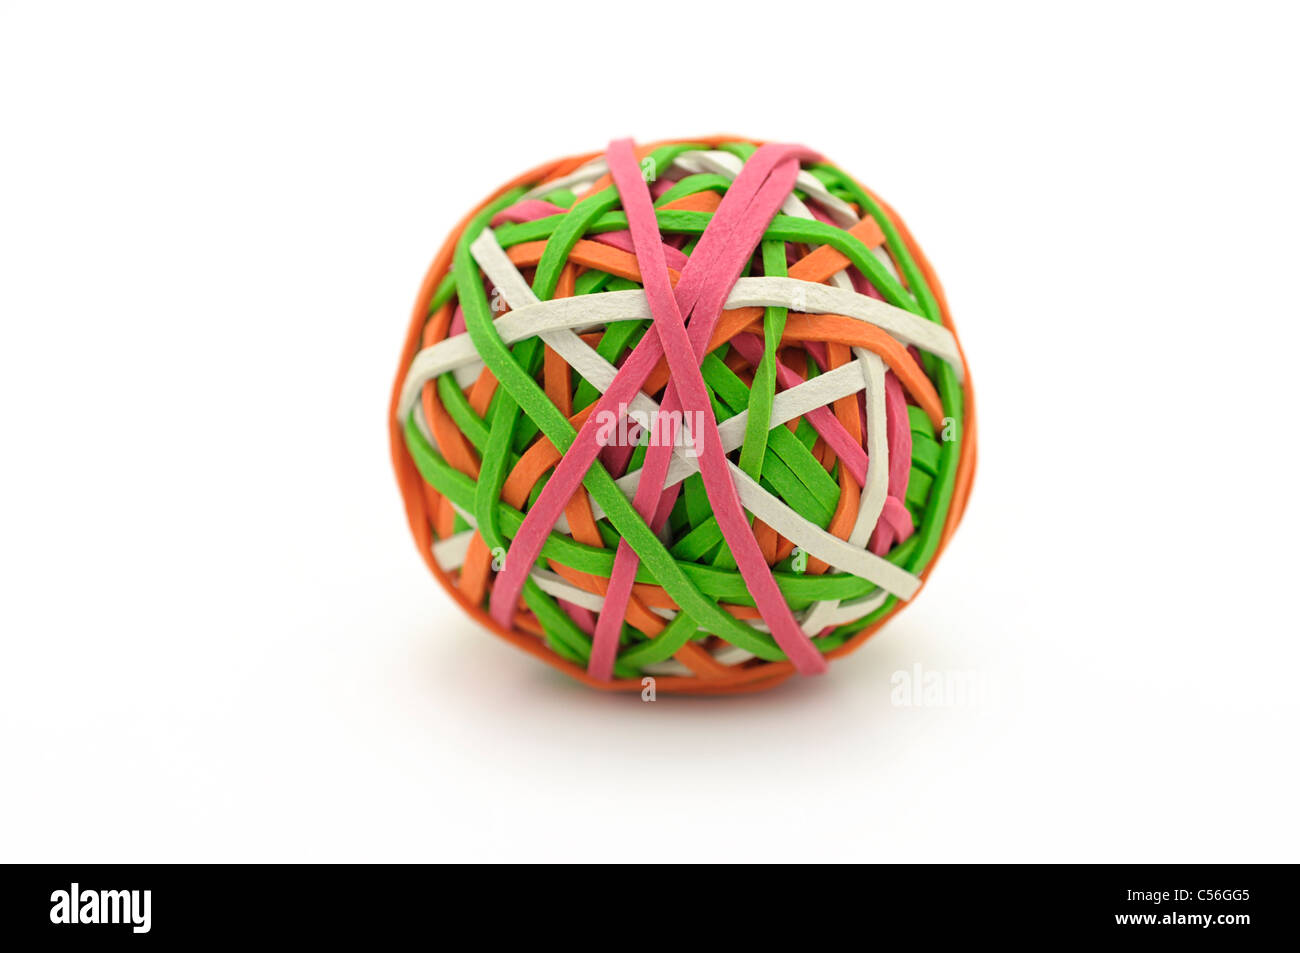 Rubber / Elastic Bands, Ball - Stock Image